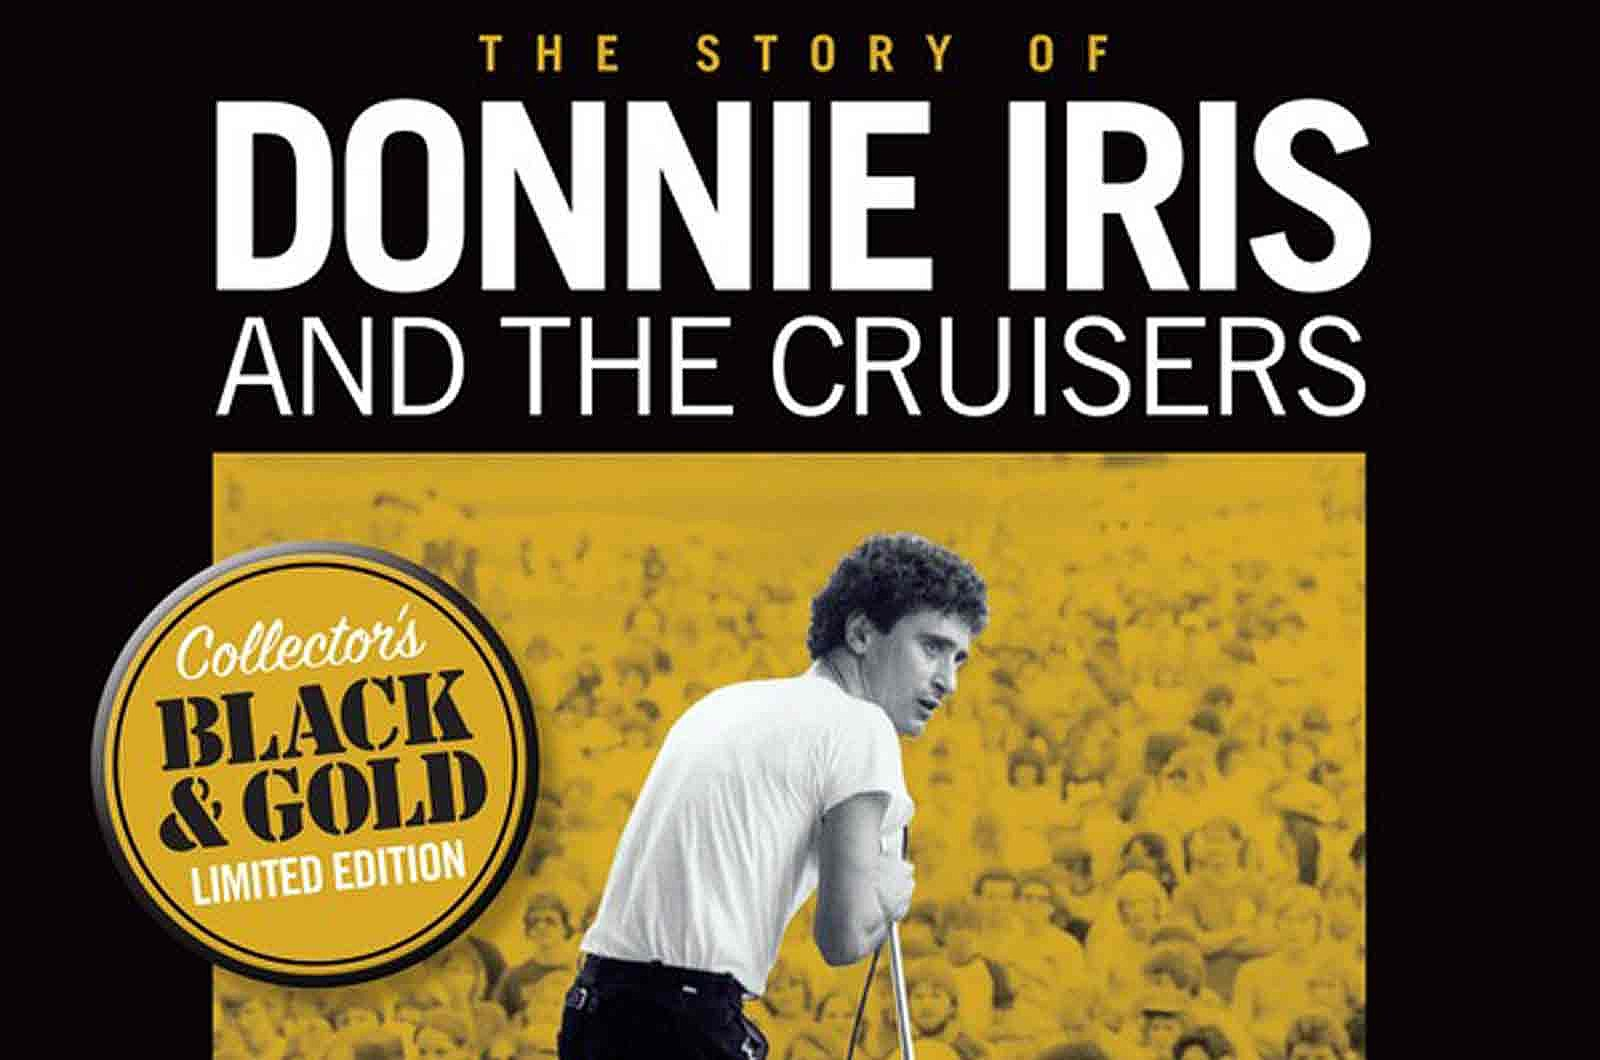 Read An Excerpt From The Story Of Donnie Iris And The Cruisers